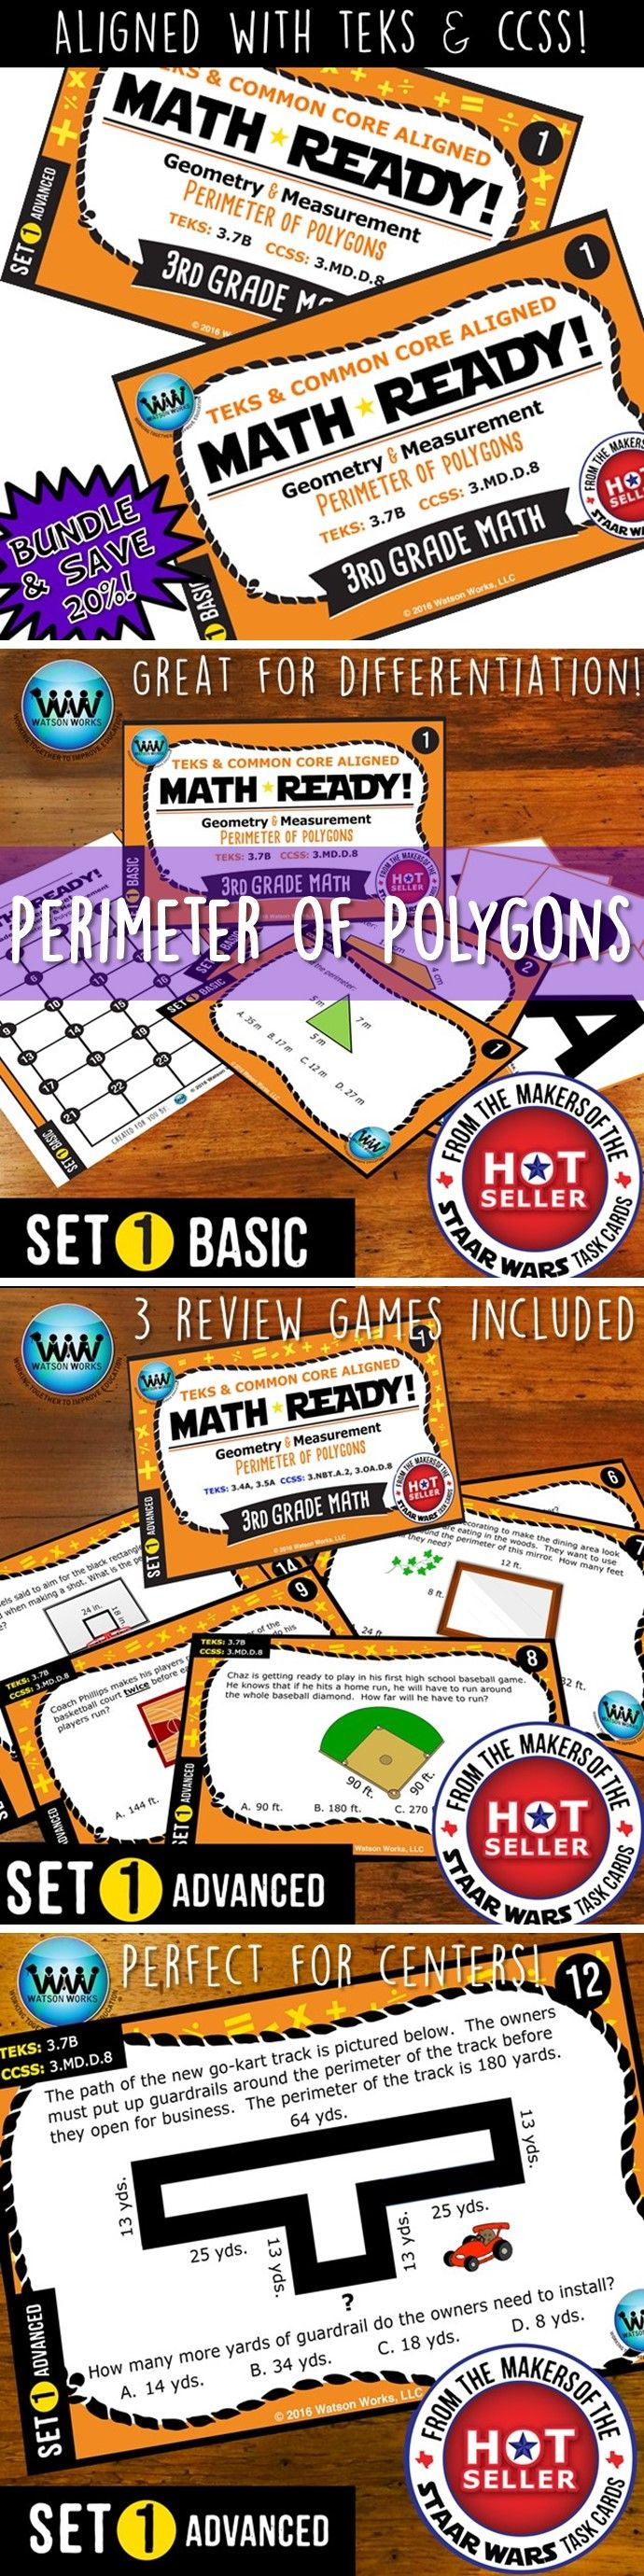 SAVE 20% WHEN YOU PURCHASE THIS BUNDLE (includes both our Basic & Advanced MATH READY Perimeter of Polygons Task Cards sets)! Both sets include 24 task cards w/ multiple choice answers. The BASIC set helps your students practice & apply their understanding of perimeter at a simpler, basic level with shorter questions, while the ADVANCED set features rigorous, higher-level thinking questions w/ longer word problems, making them great for differentiation. $4.78 #taskcards #3rdgrade #iteach3rd